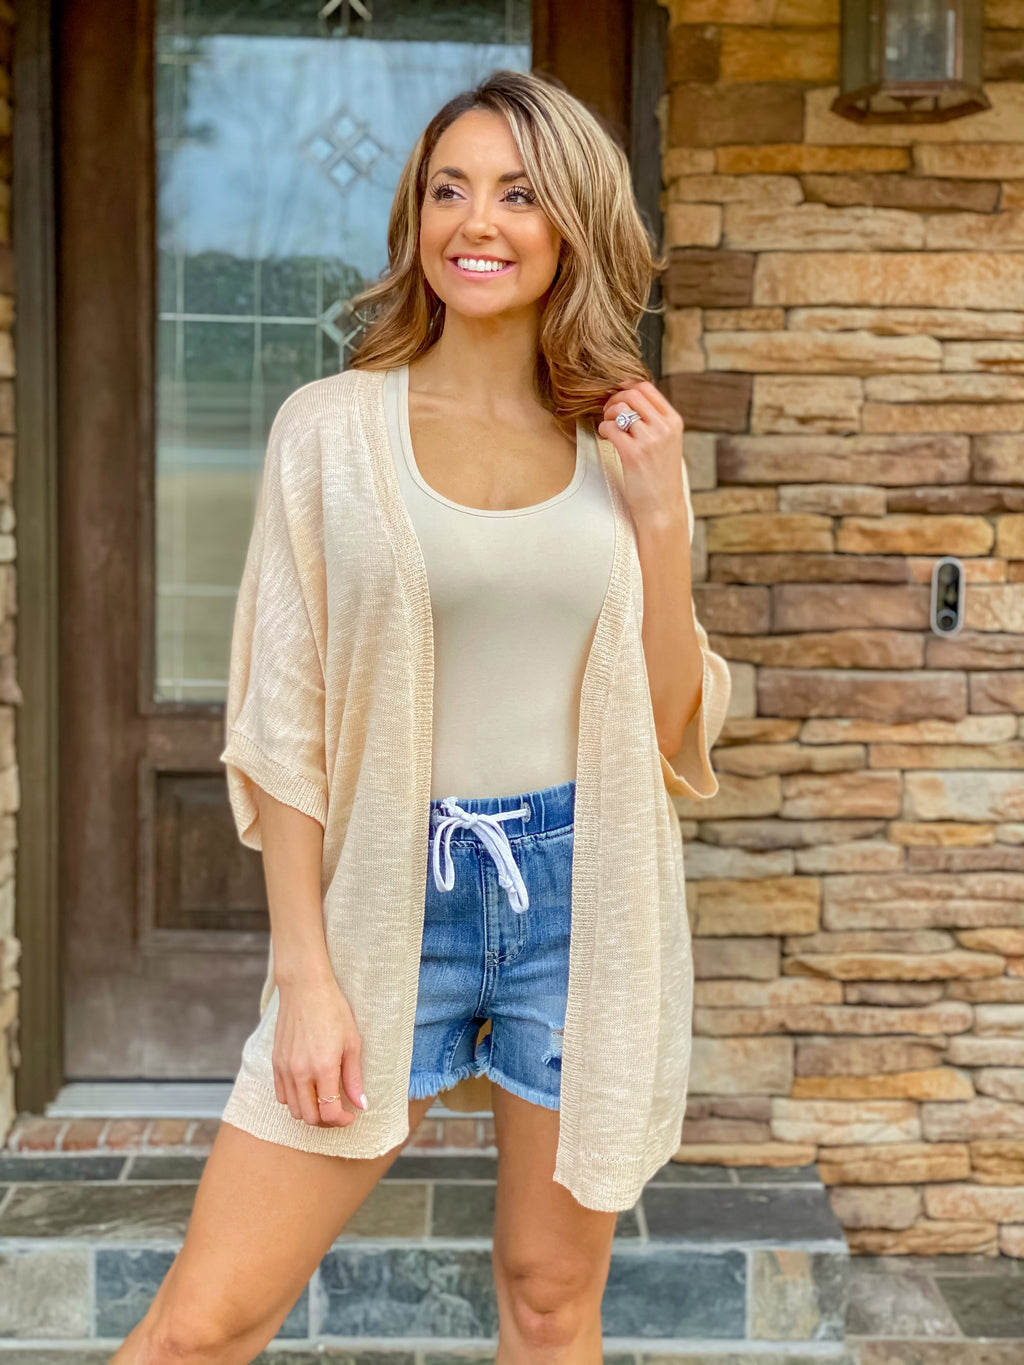 Can't Live Without You Cardigan (Light Peach)